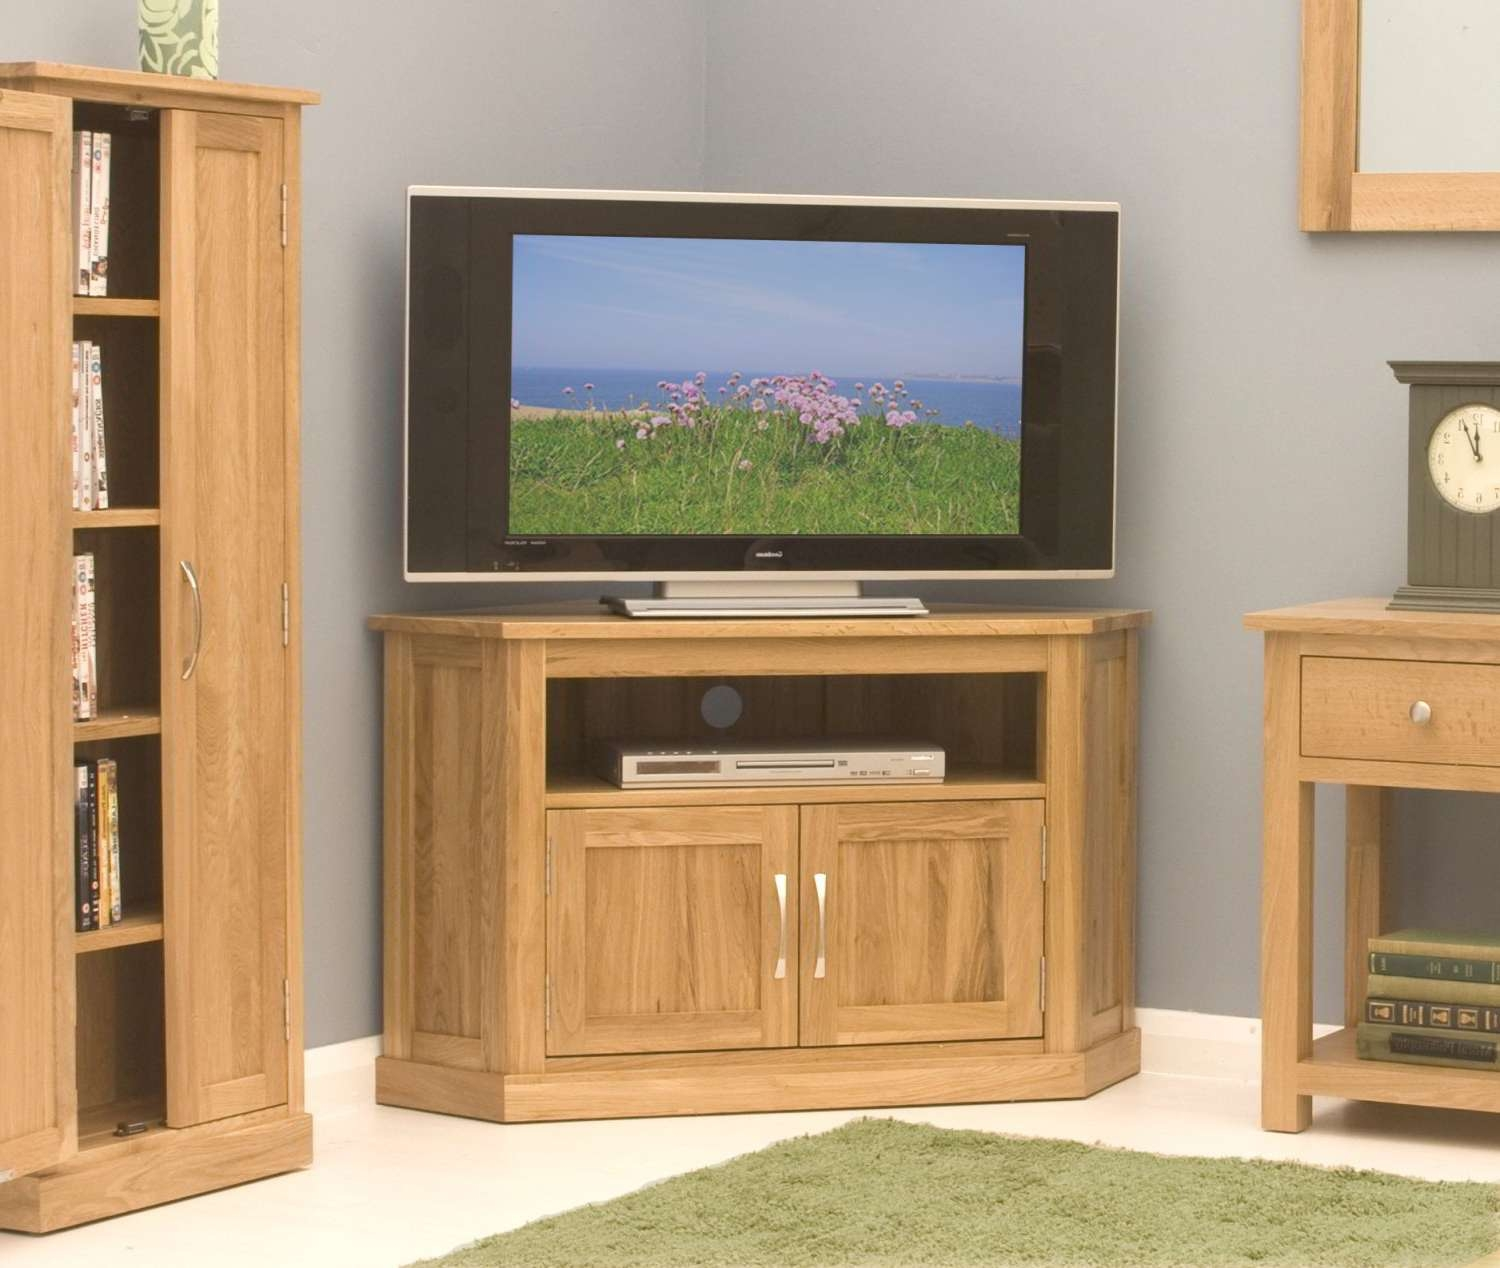 Conran Solid Oak Living Room Furniture Corner Television Cabinet Regarding Light Oak Corner Tv Stands (View 3 of 20)